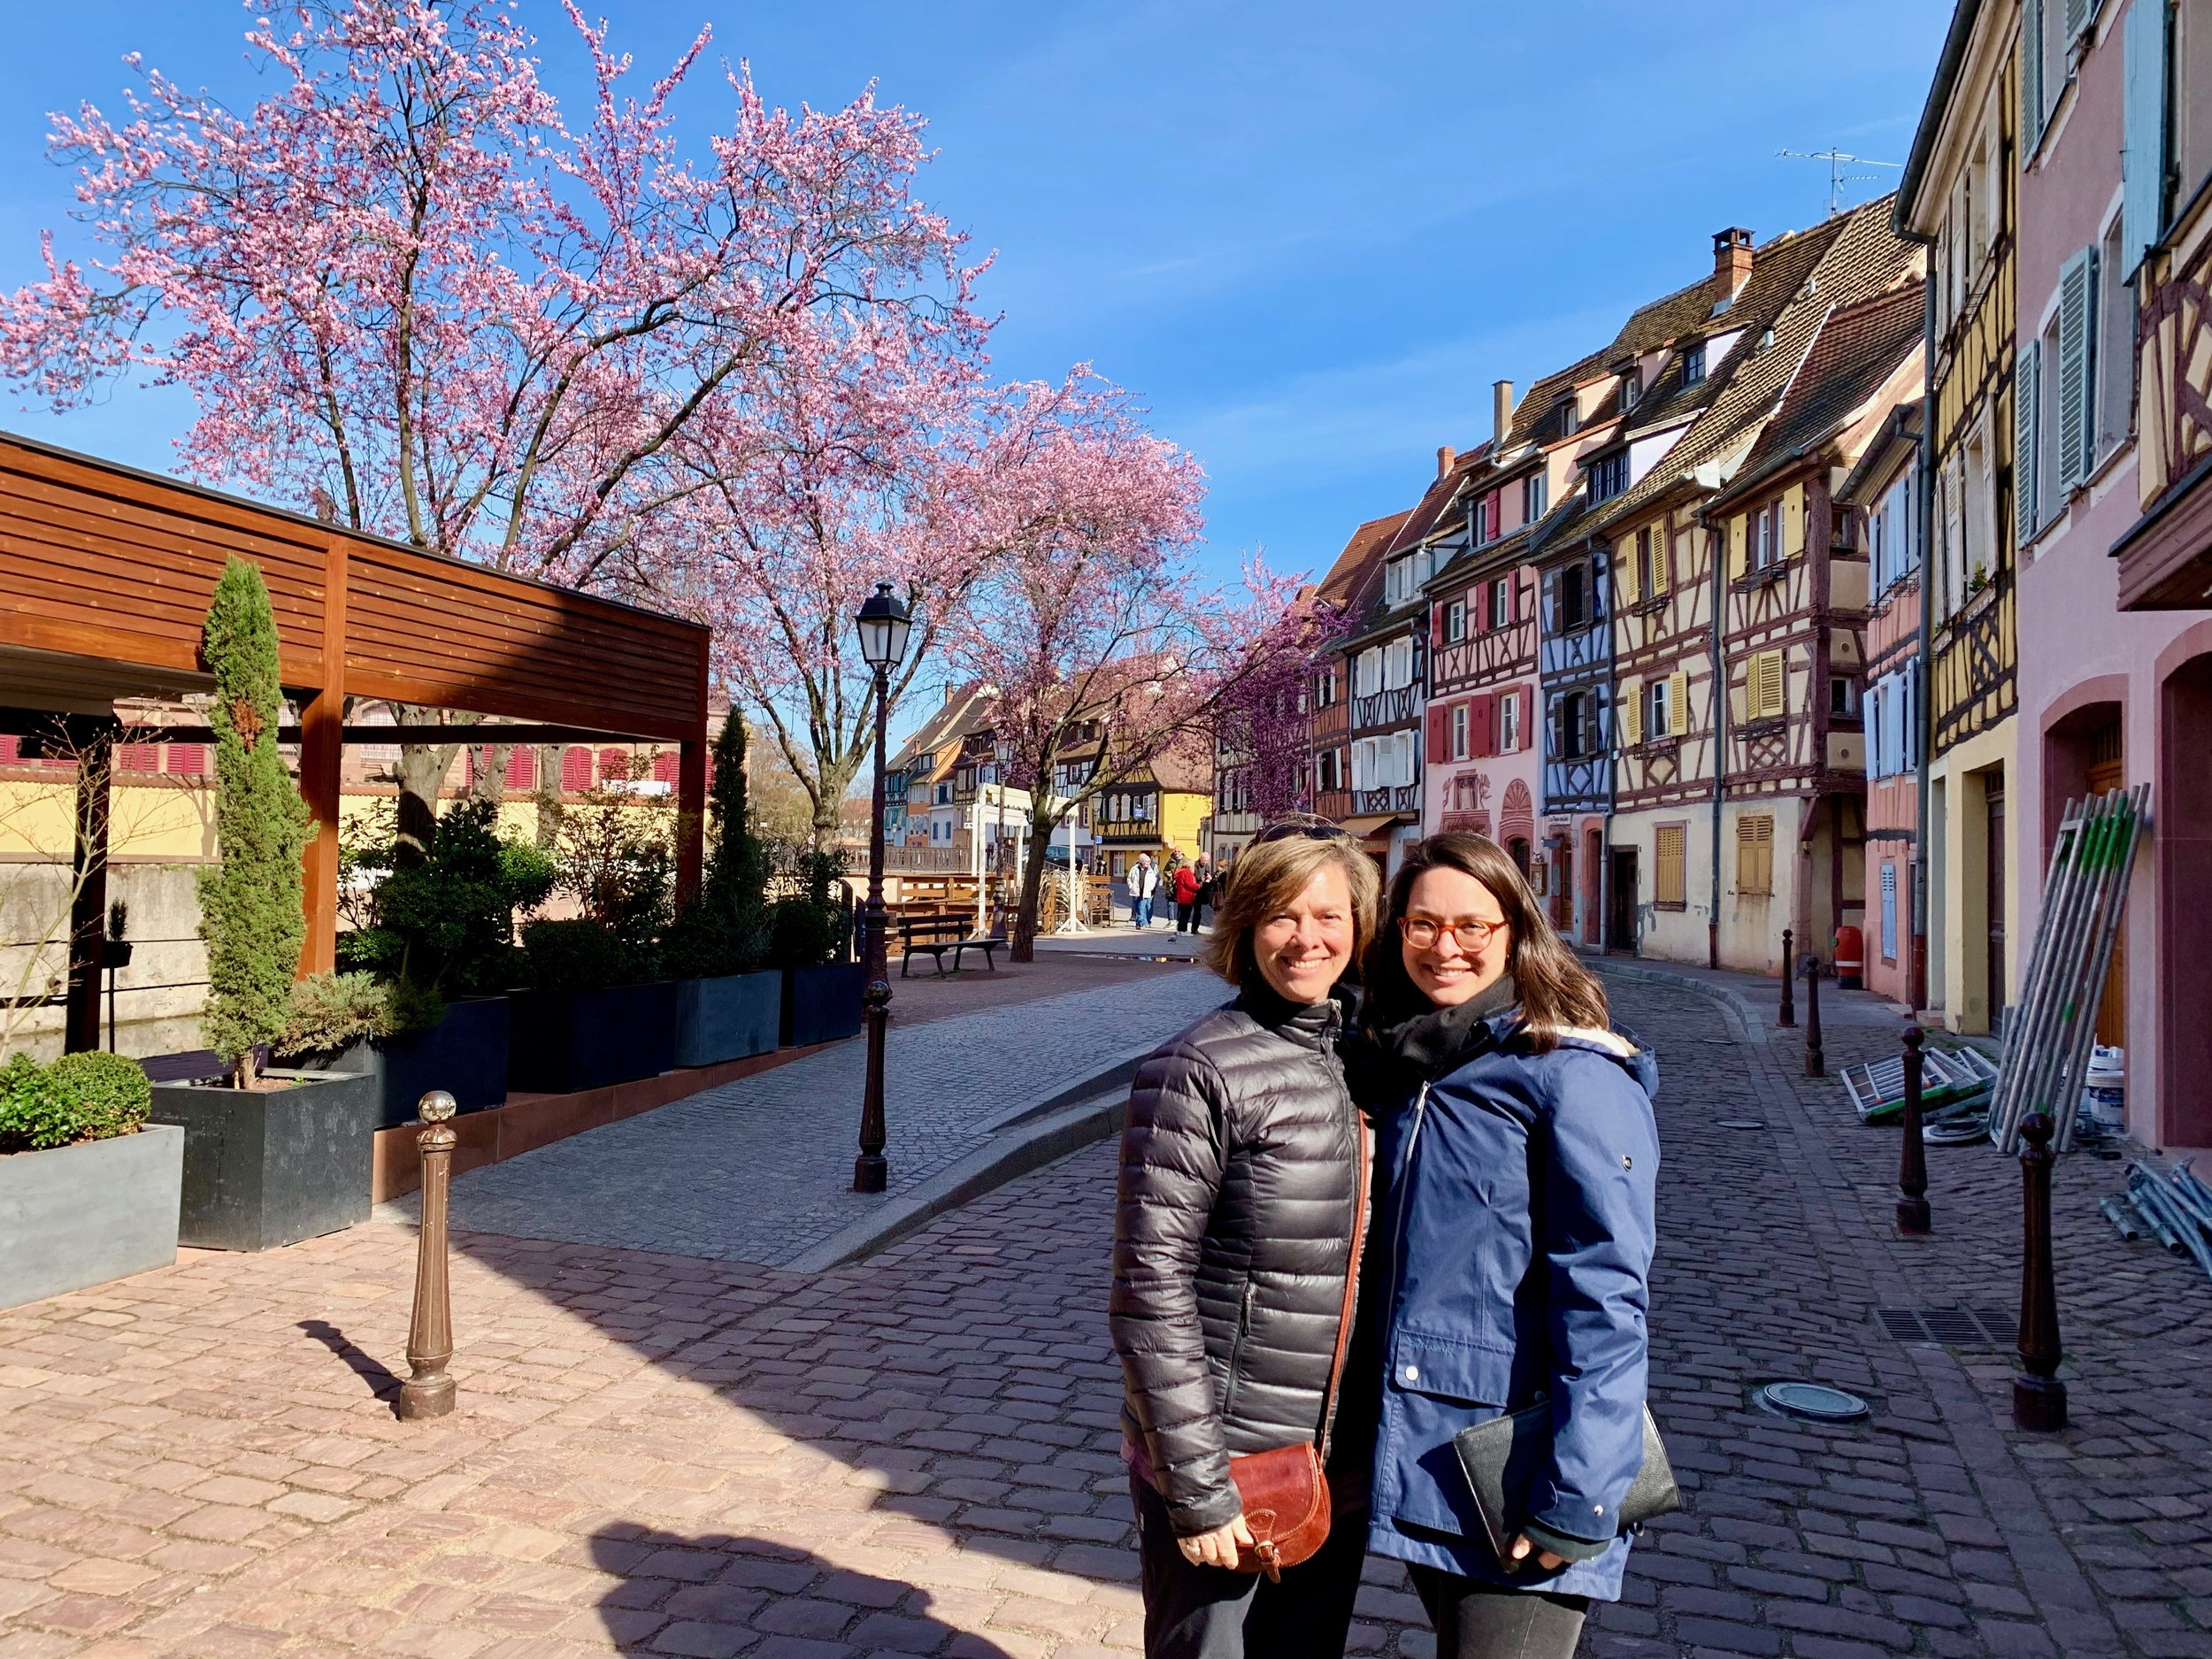 Betsy and Chelsea on the streets of Colmar, Alsace, France